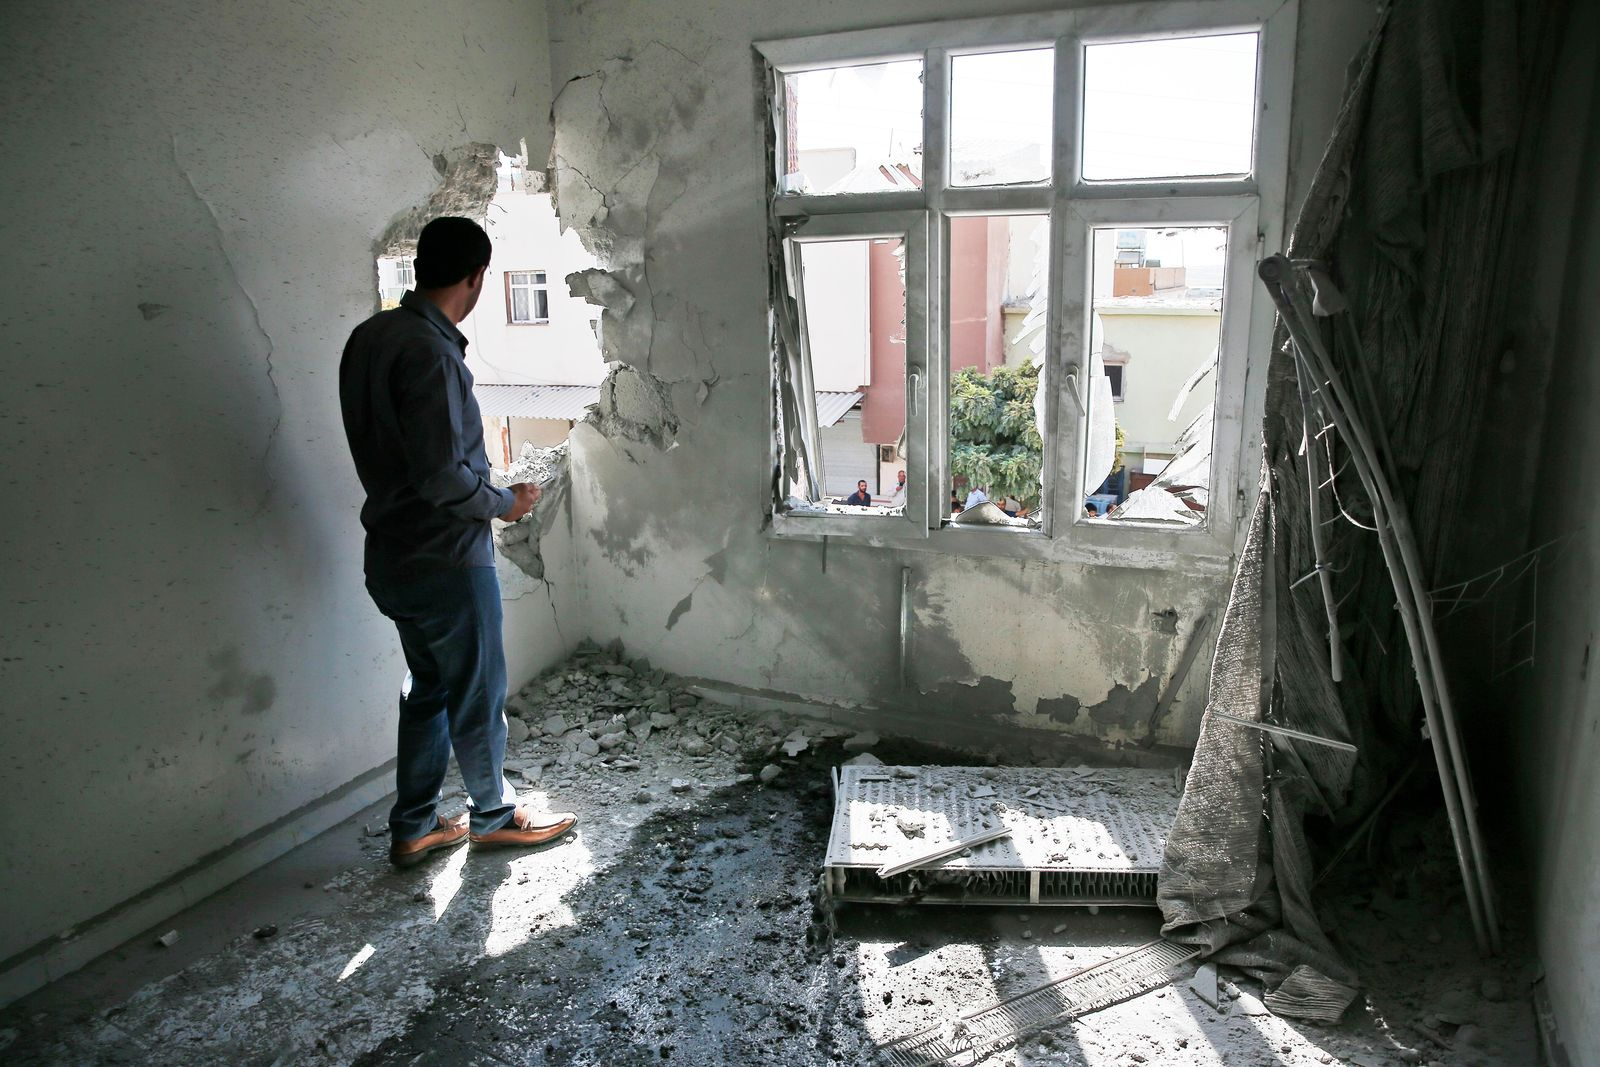 A person inspects the damage on a building hit by a mortar fired from inside Syria, in Akcakale, Sanliurfa province, southeastern Turkey, Sunday, Oct. 13, 2019. (AP Photo/Lefteris Pitarakis)